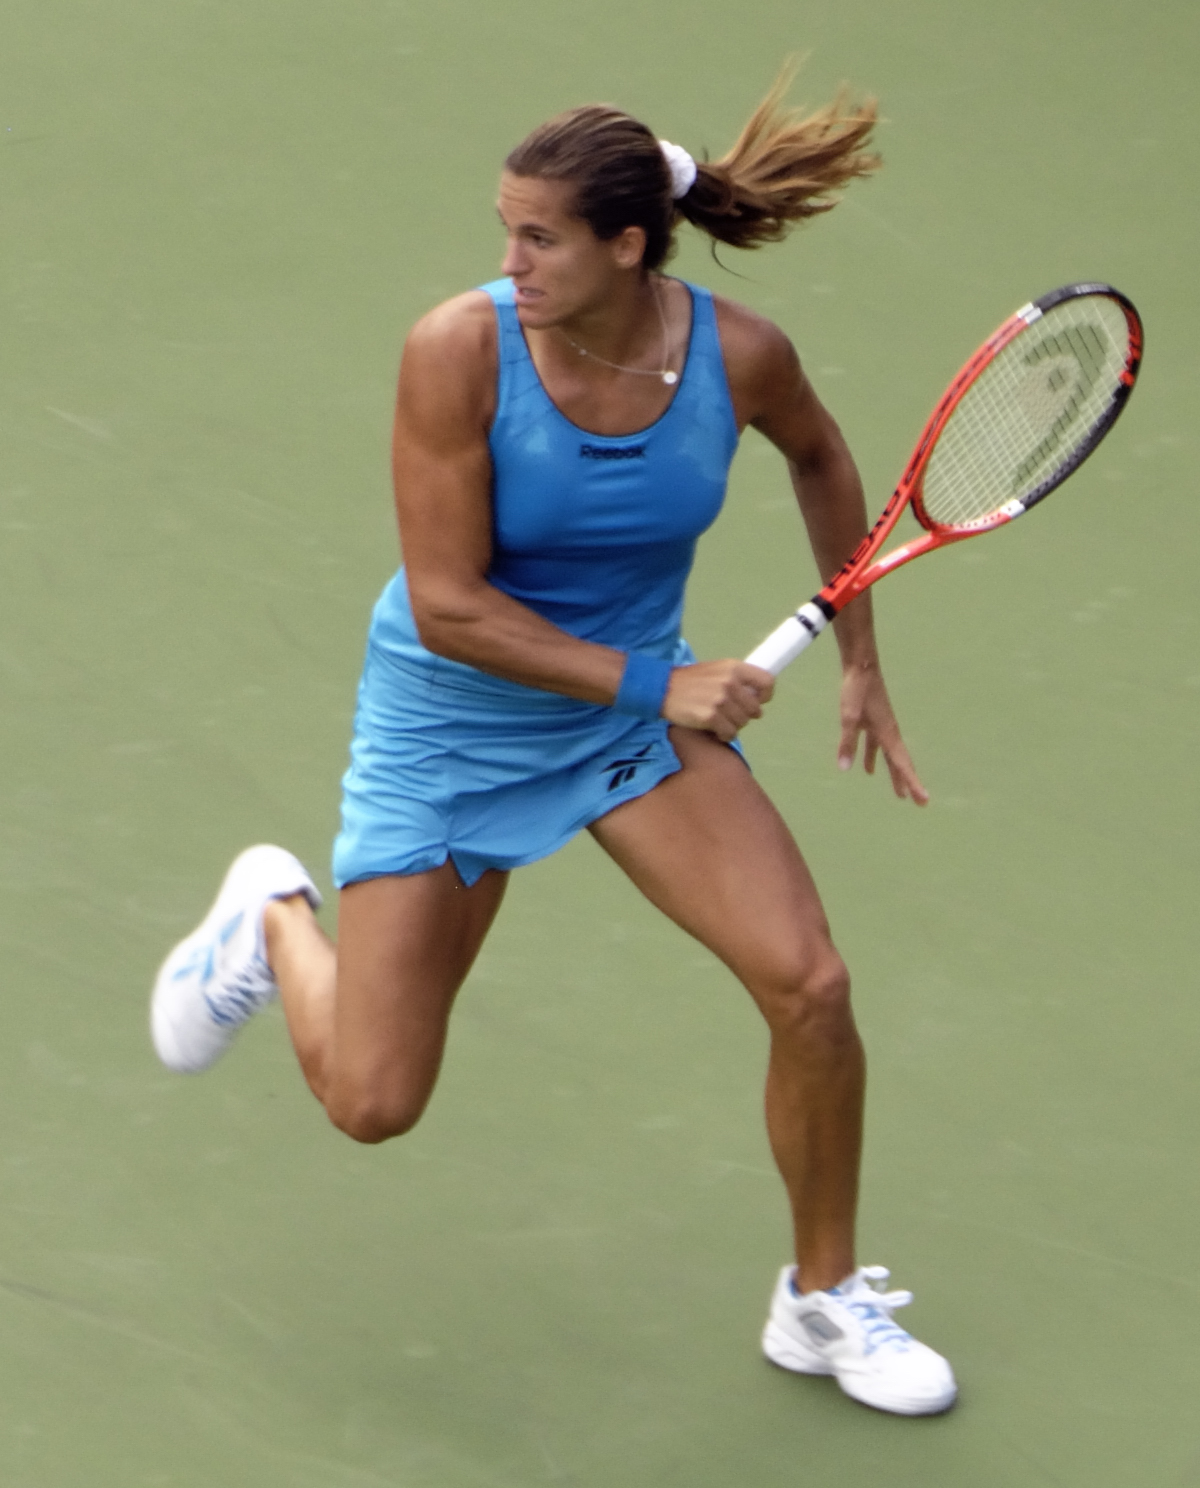 File Amélie Mauresmo at the 2009 US Open 03 Wikimedia mons